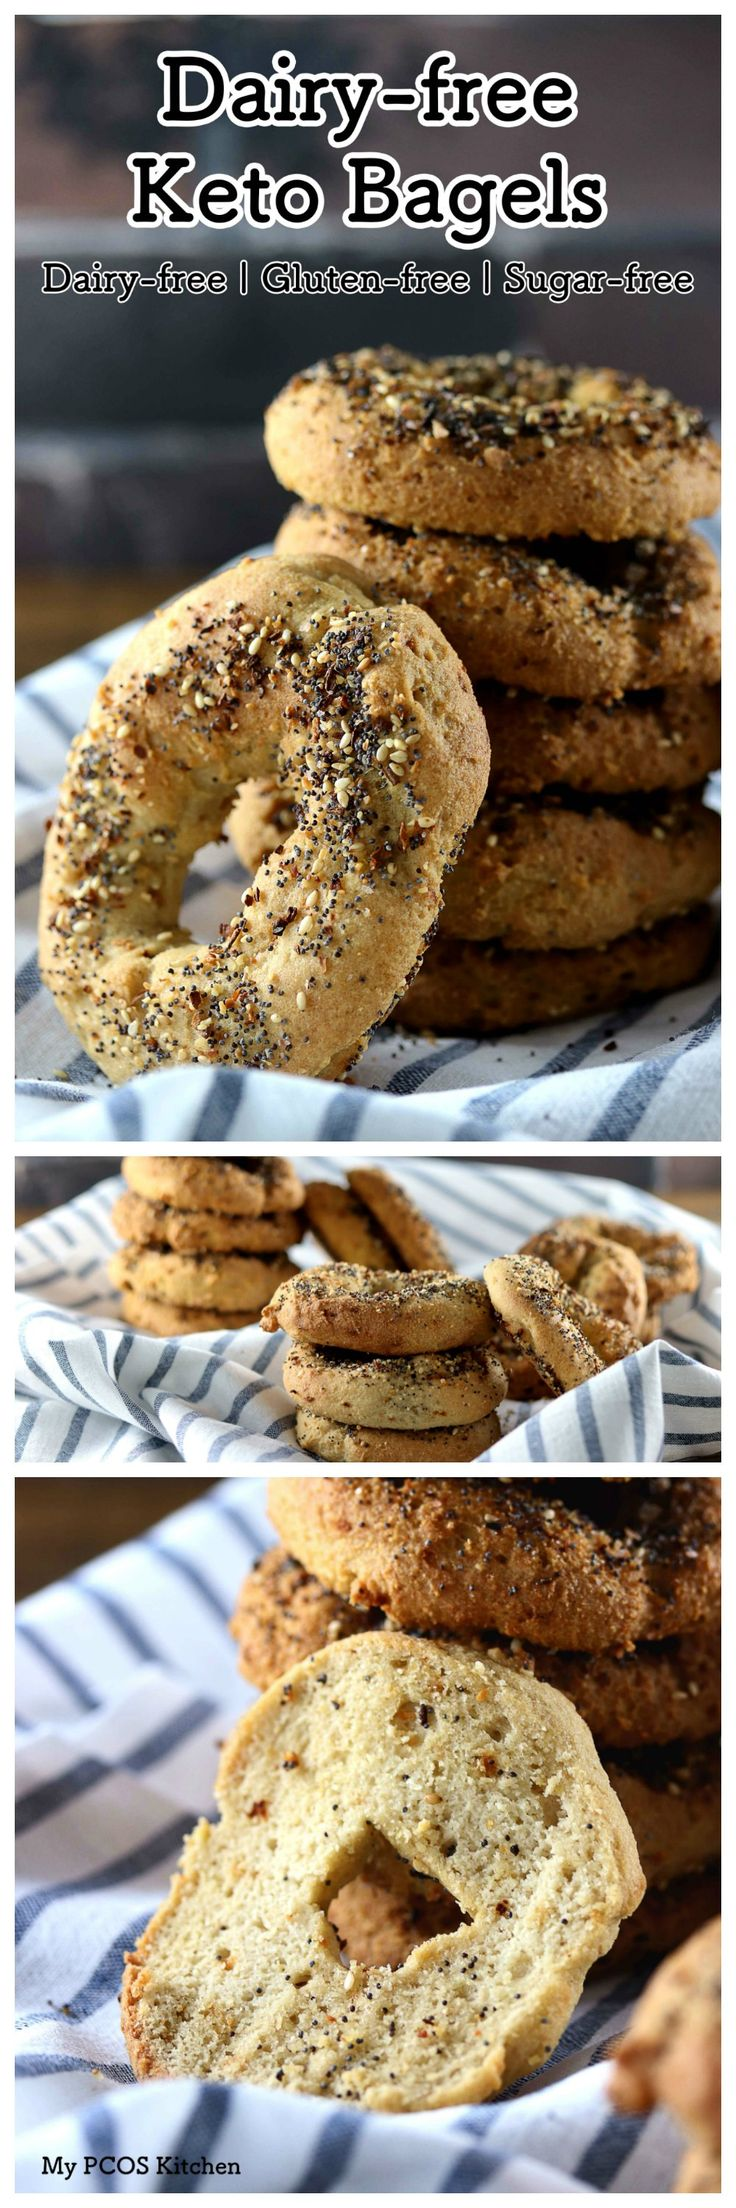 My PCOS Kitchen - Dairy-free Keto Bagels - These bagels are gluten-free, wheat-free and starch-free! Perfect for breakfast or lunch! via @mypcoskitchen